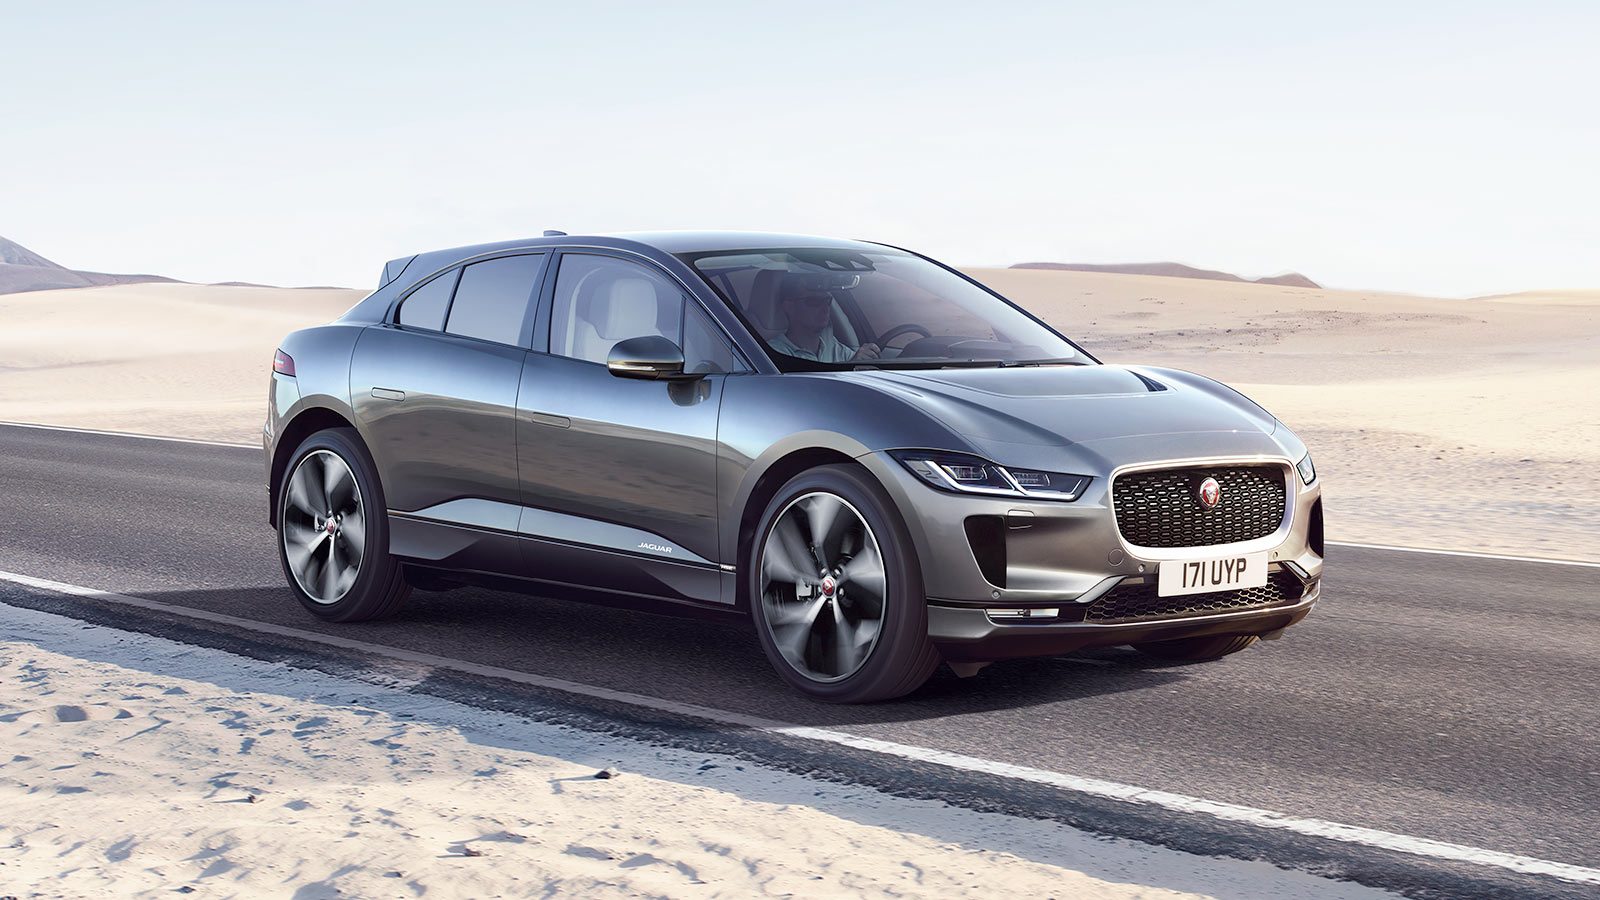 Jaguar I-PACE Front 3 Quarter driving on a road in rough terrain.